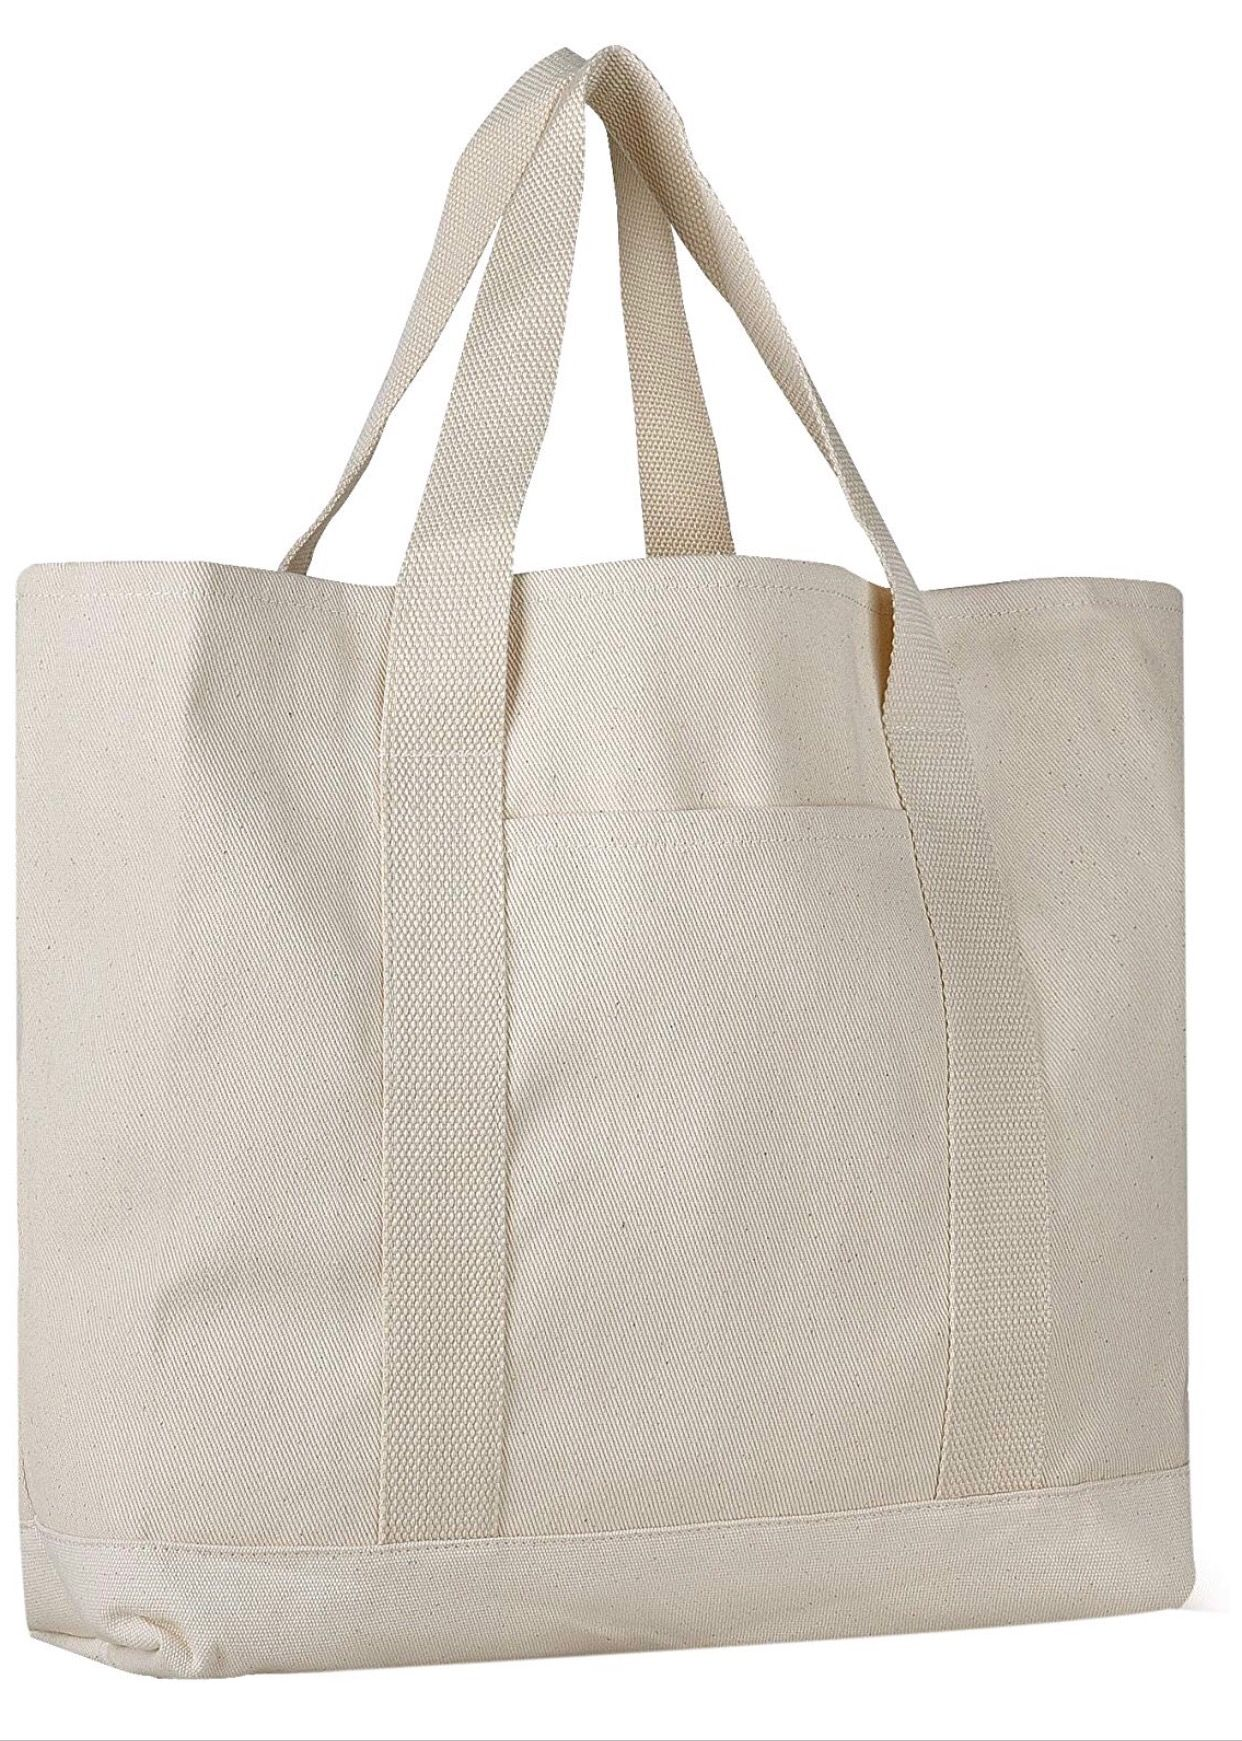 00767bafa58763 This tote bag is both meaningful and stylish as a promotional product to be  used as corporate giveaway item or in trade shows.It is highly durable